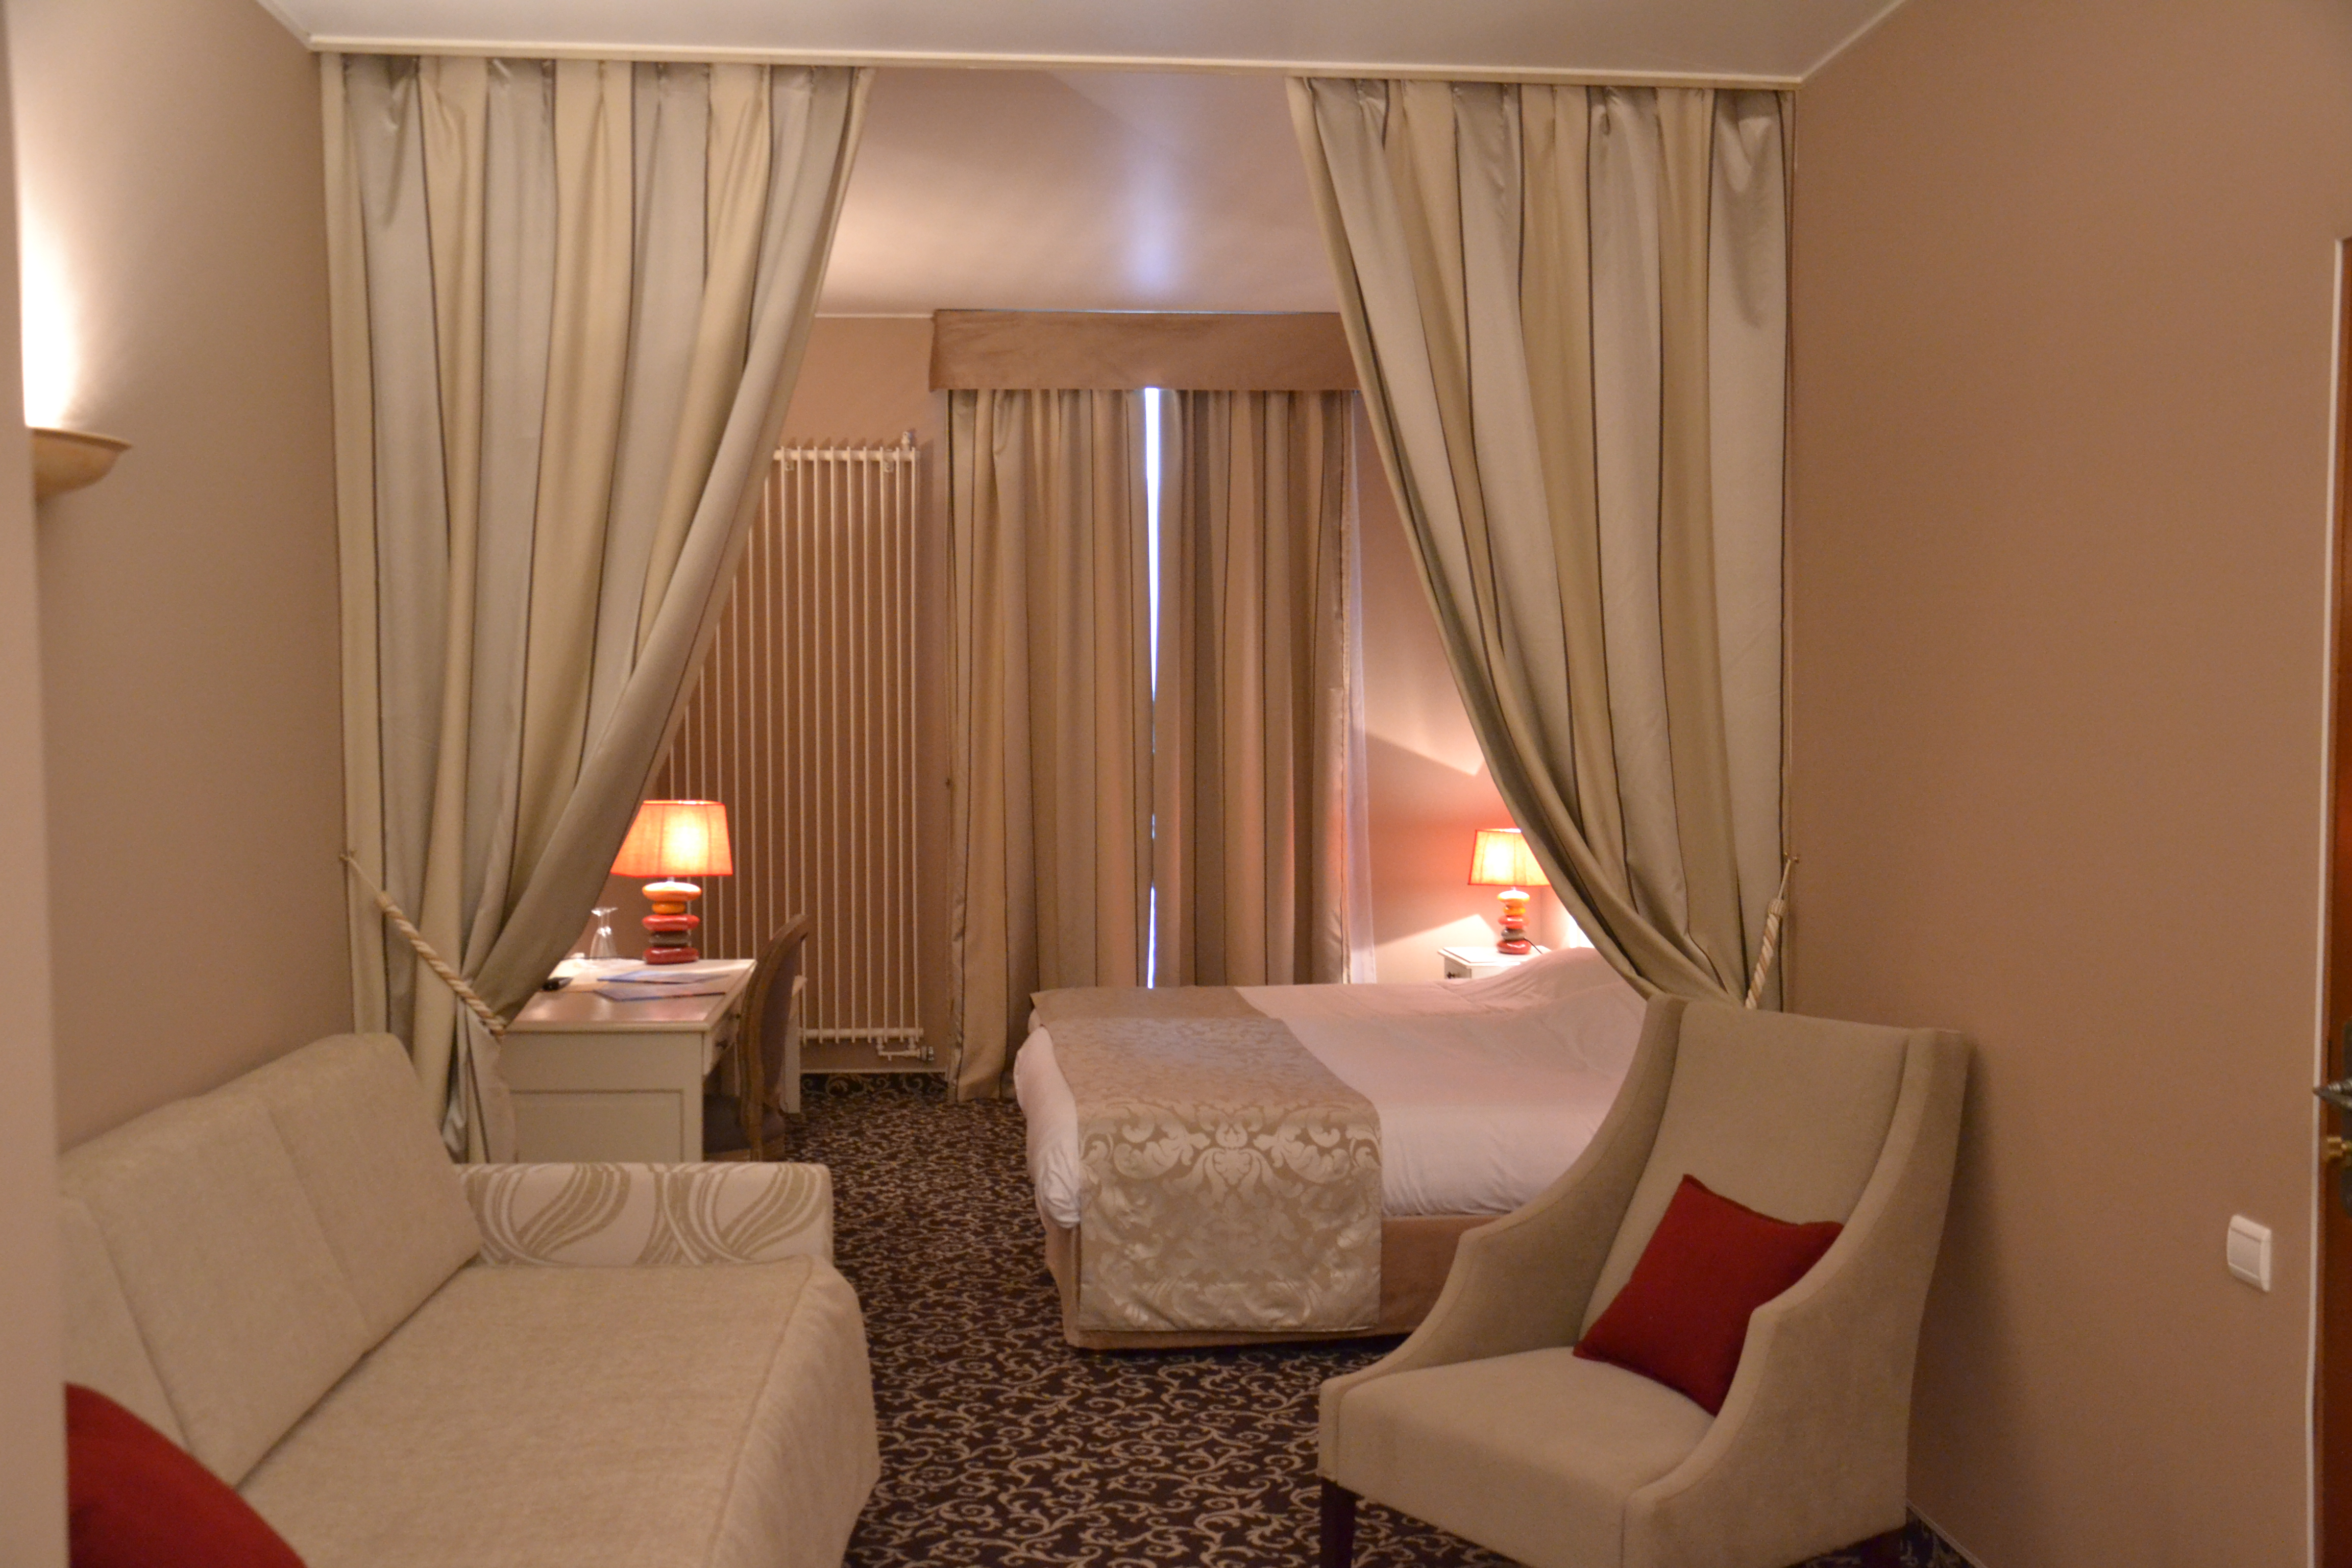 Chambre luxe hotel ~ lombards for .